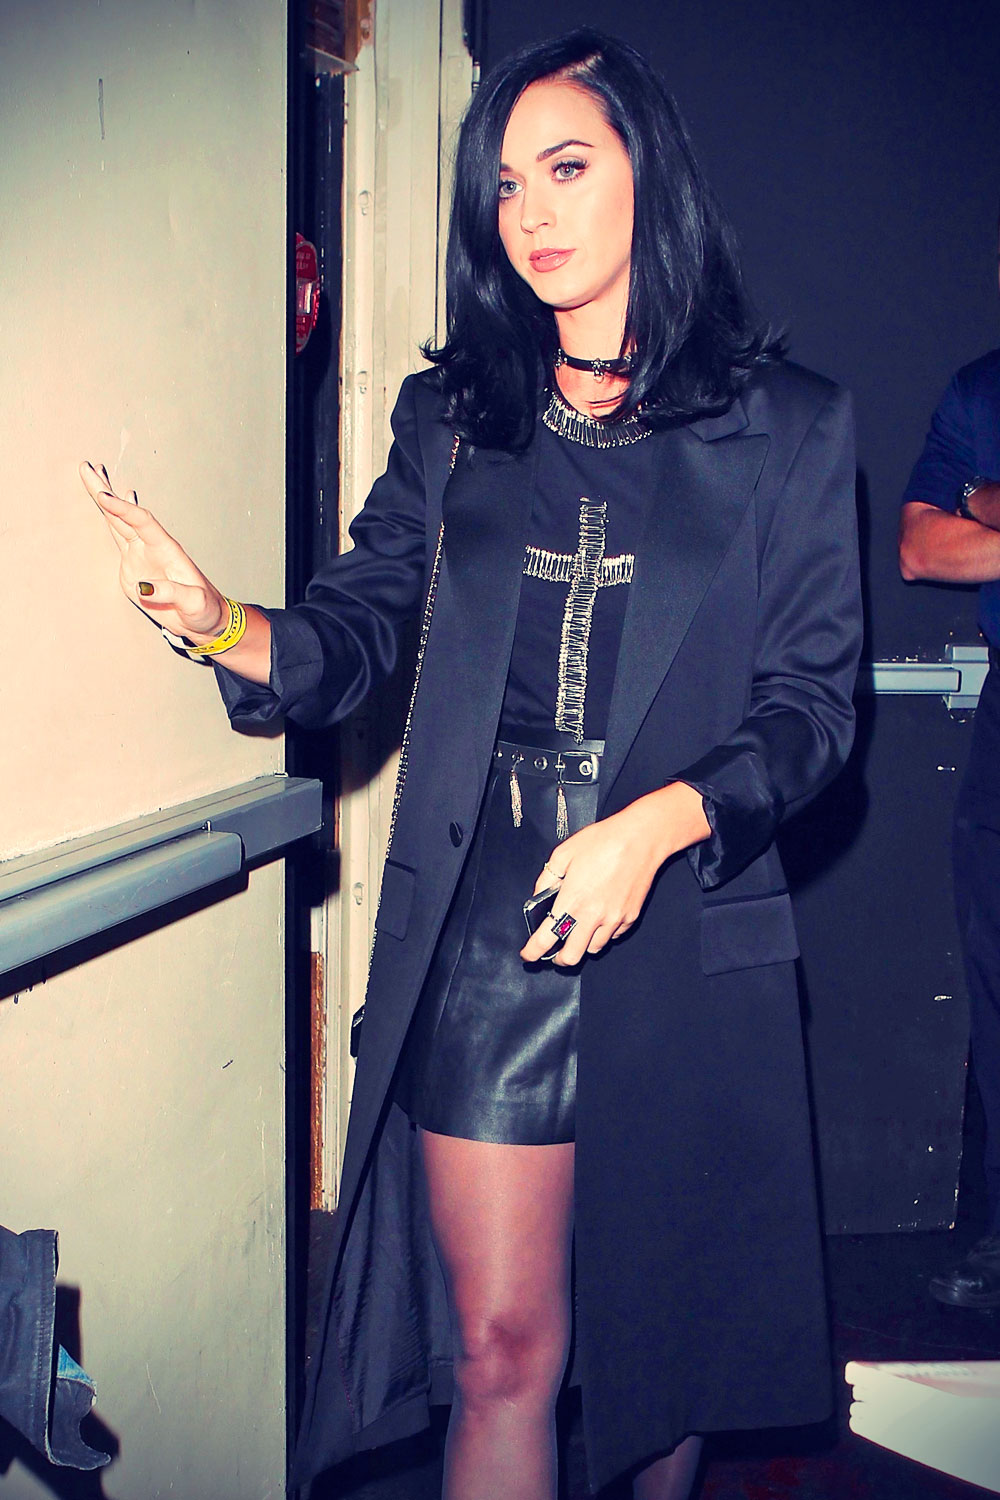 katy perry seen while leaving the pantages theater